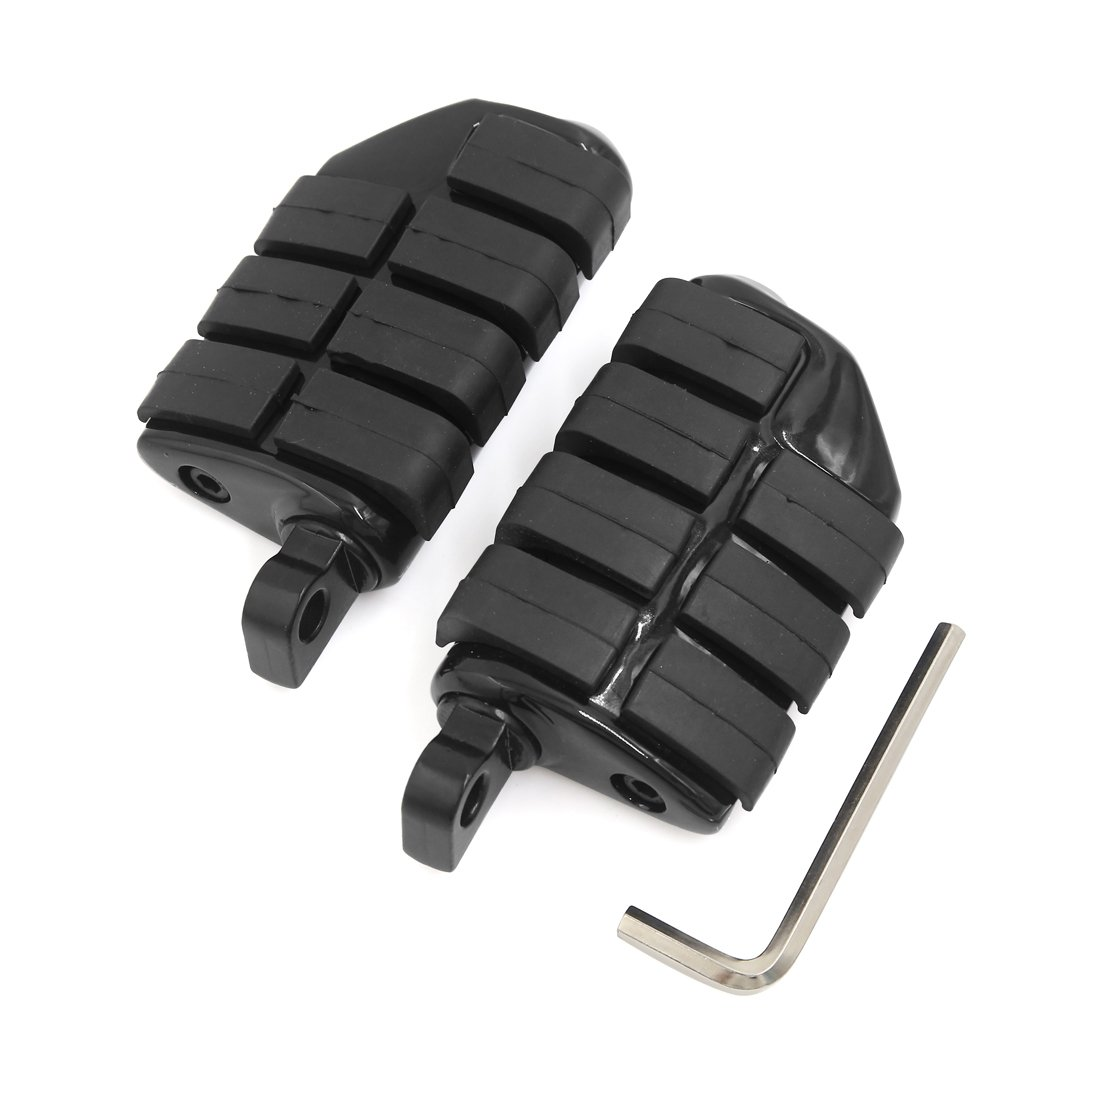 uxcell Gloss Black Male Mount Dually Highway Motorcycle Foot Pegs For Harley Davidson Road King Street Glide